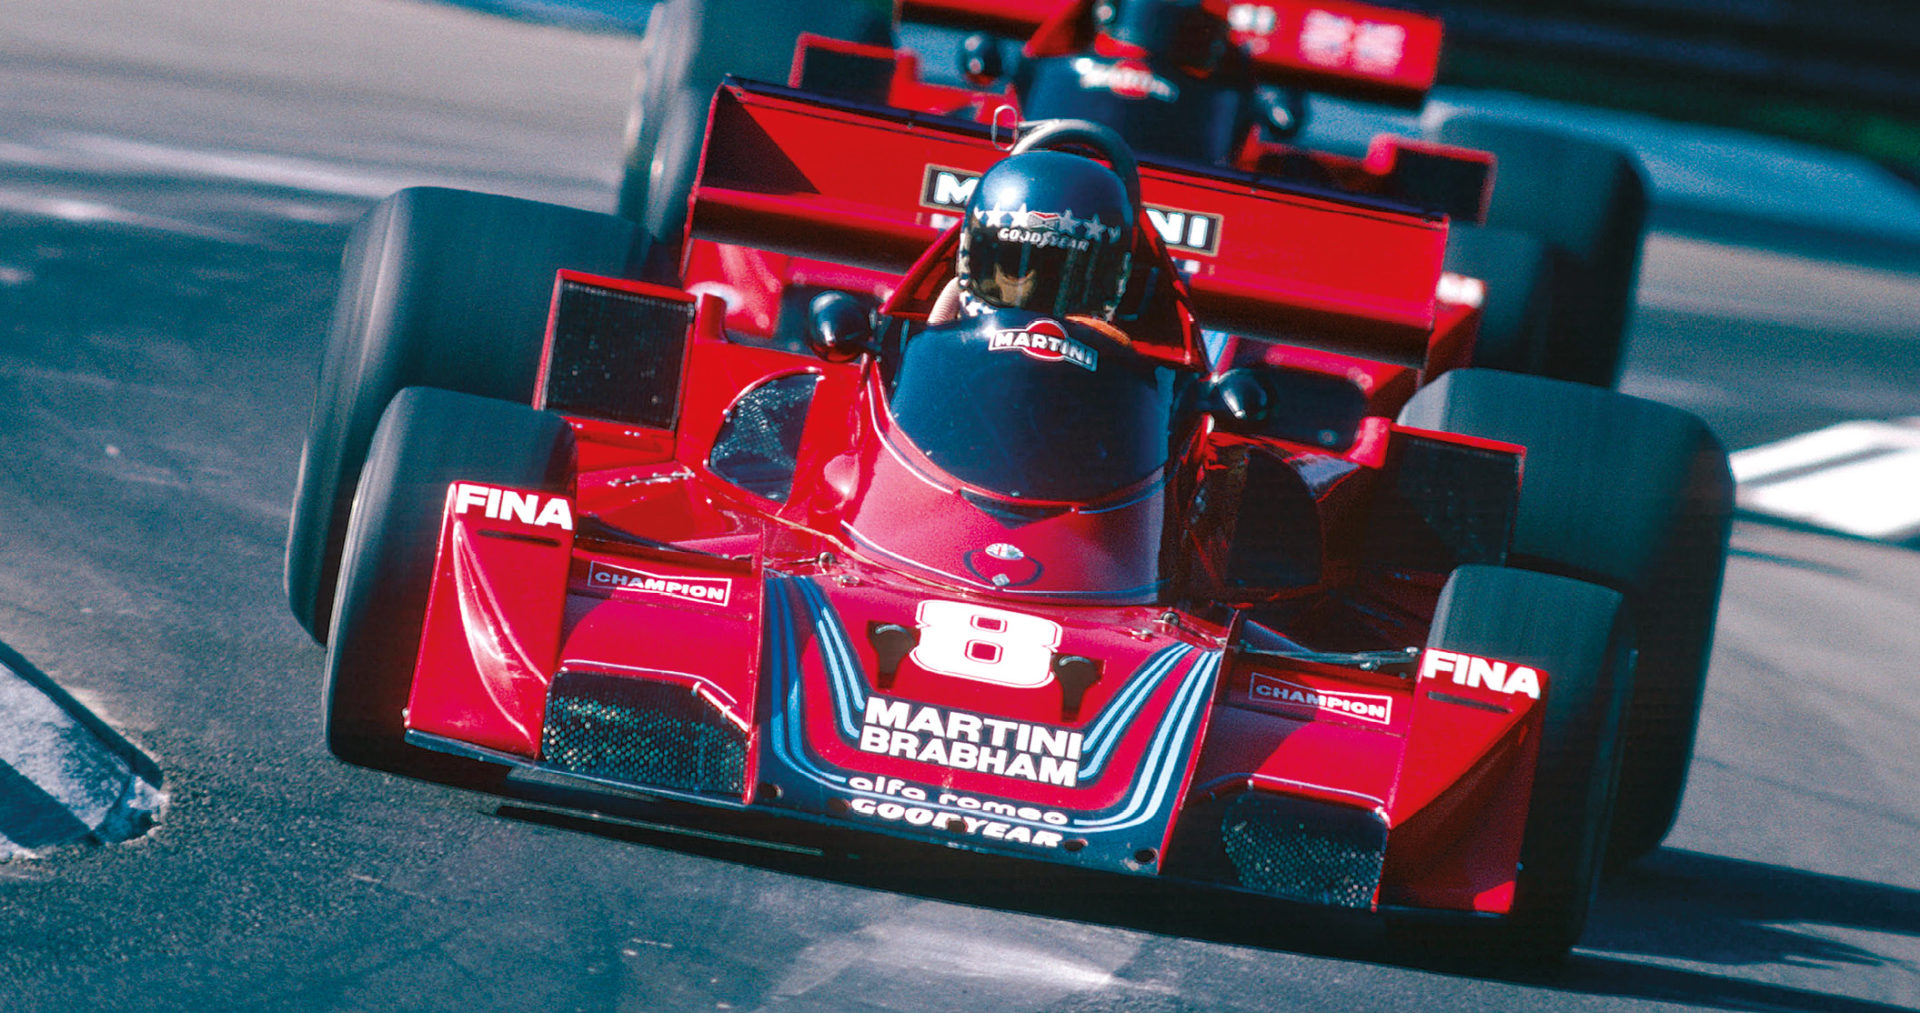 Stuck's best F1 season came with the Brabham-Alfa Romeo team in 1977, when he scored two podium finishes.